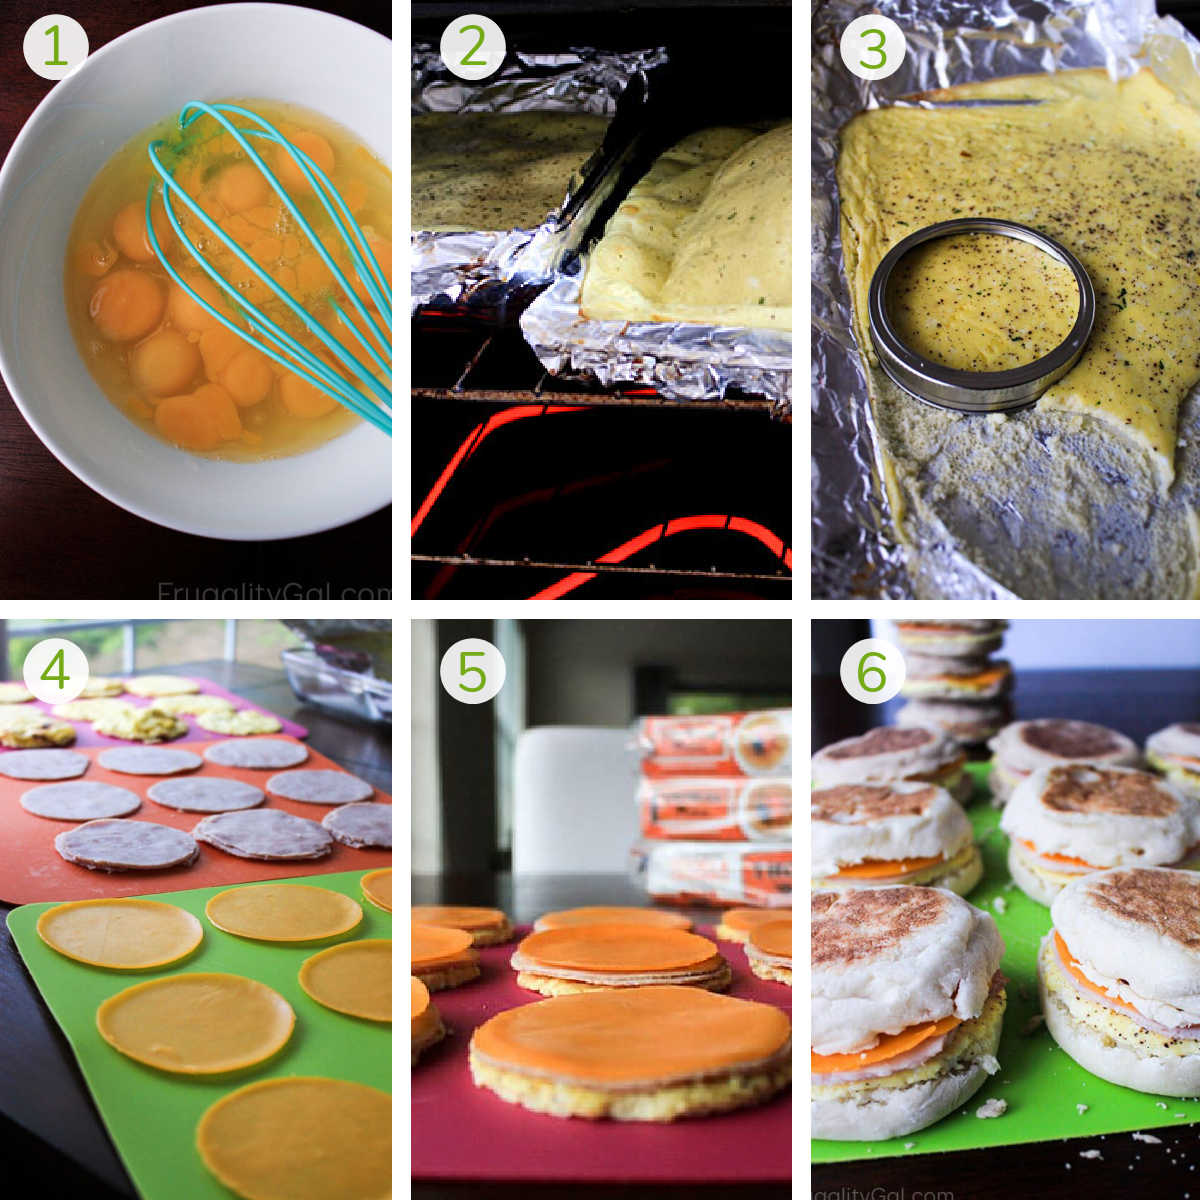 six process shots showing how to make the eggs, stack the cheese and ham, and make the breakfast sandwiches.